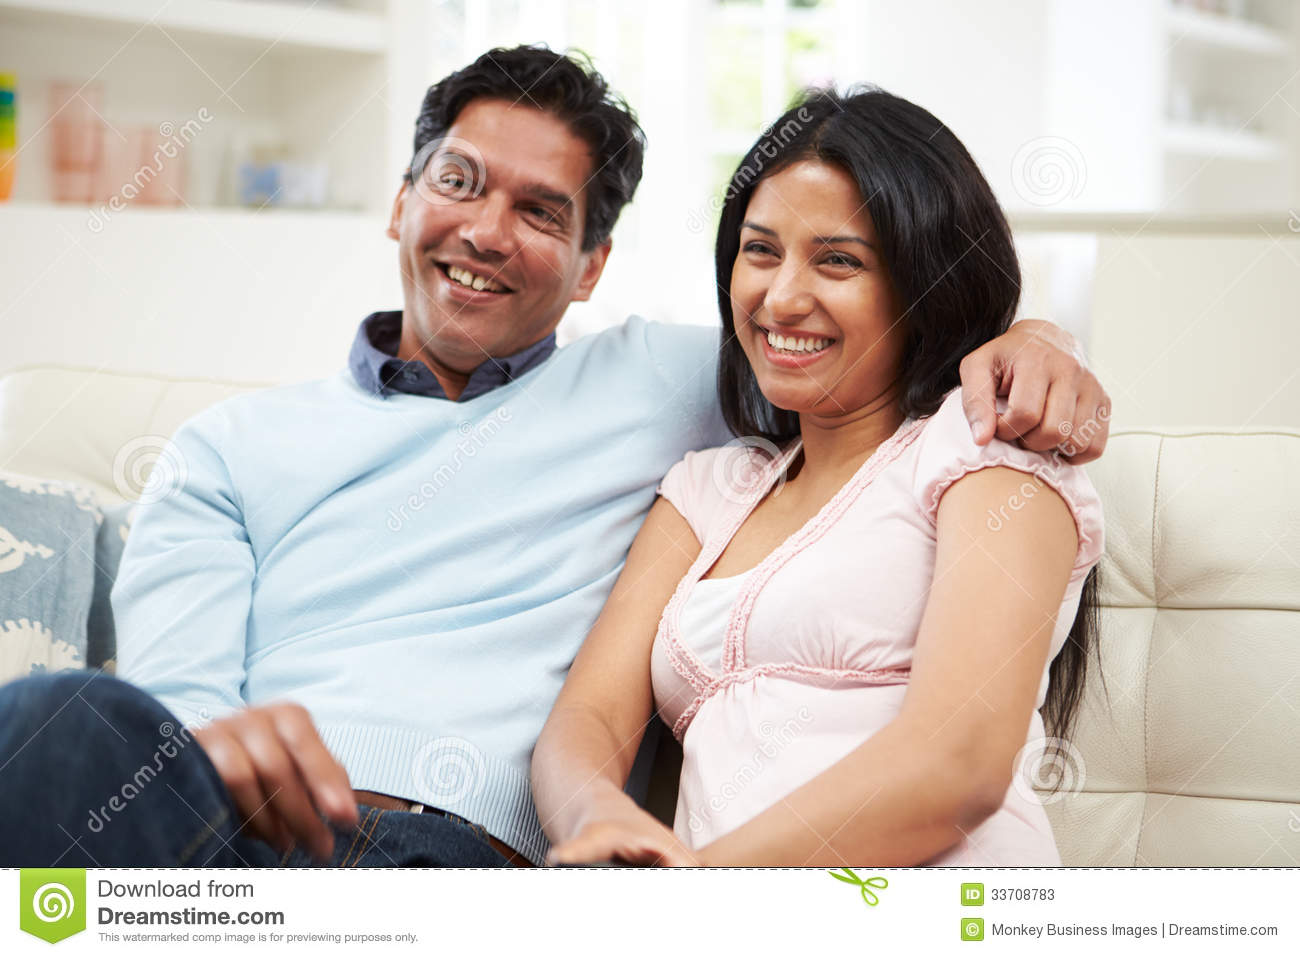 Indian Couple Sitting On Sofa Watching TV Together Stock  : indian couple sitting sofa watching tv together arm over shoulder 33708783 from dreamstime.com size 1300 x 957 jpeg 111kB